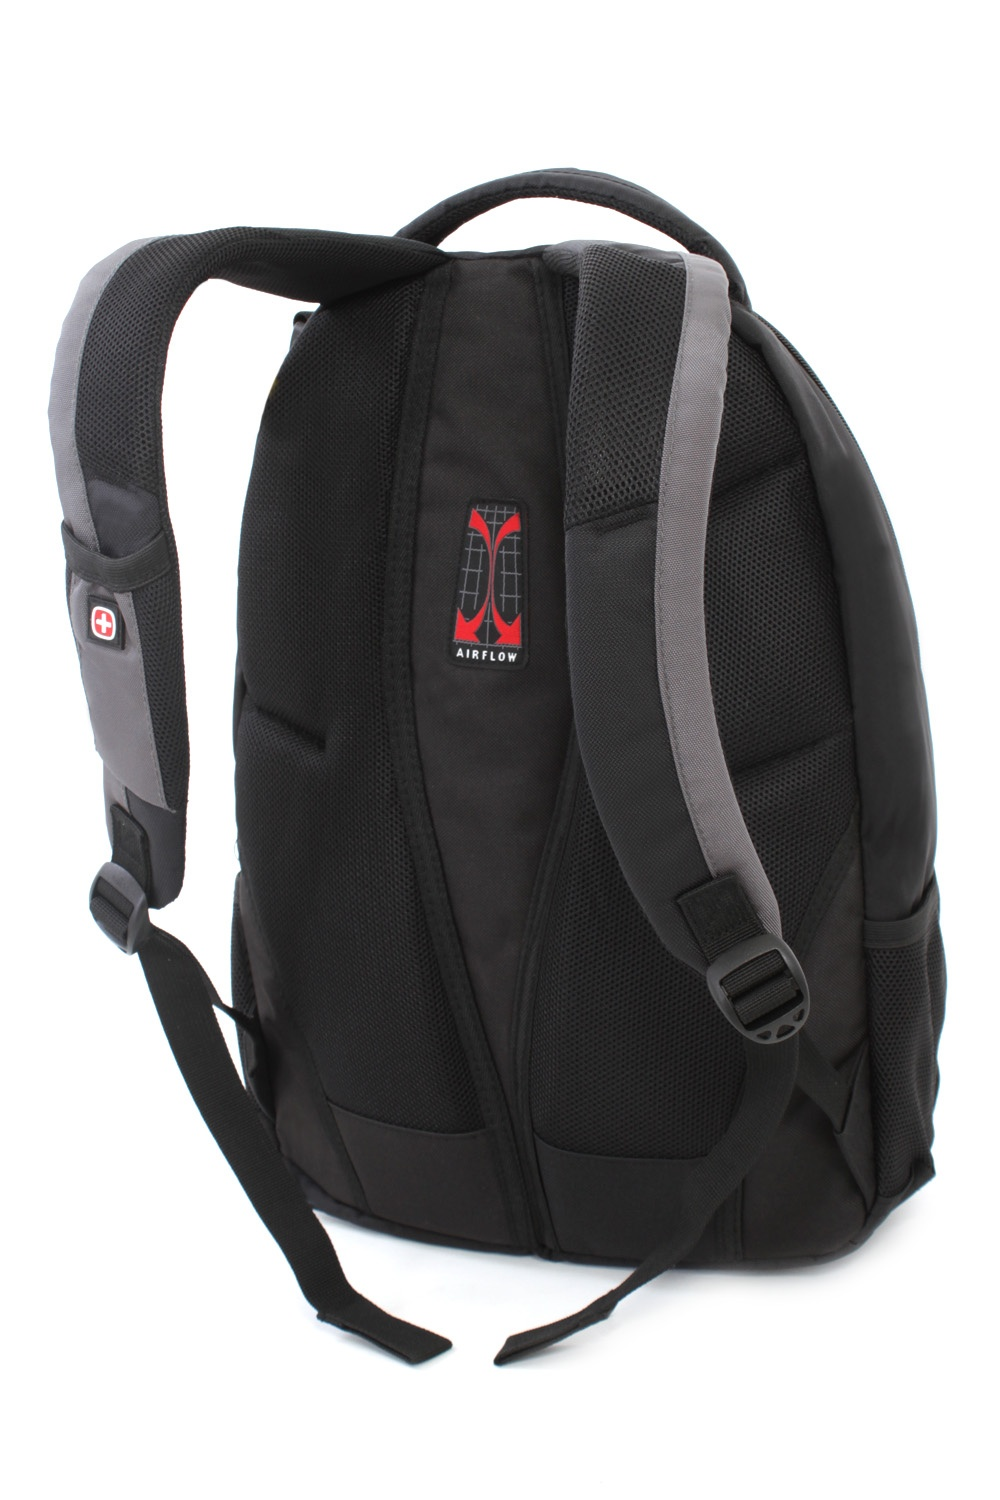 SwissGear Travel Gear Bungee Backpack (Black/Grey) - Walmart.com